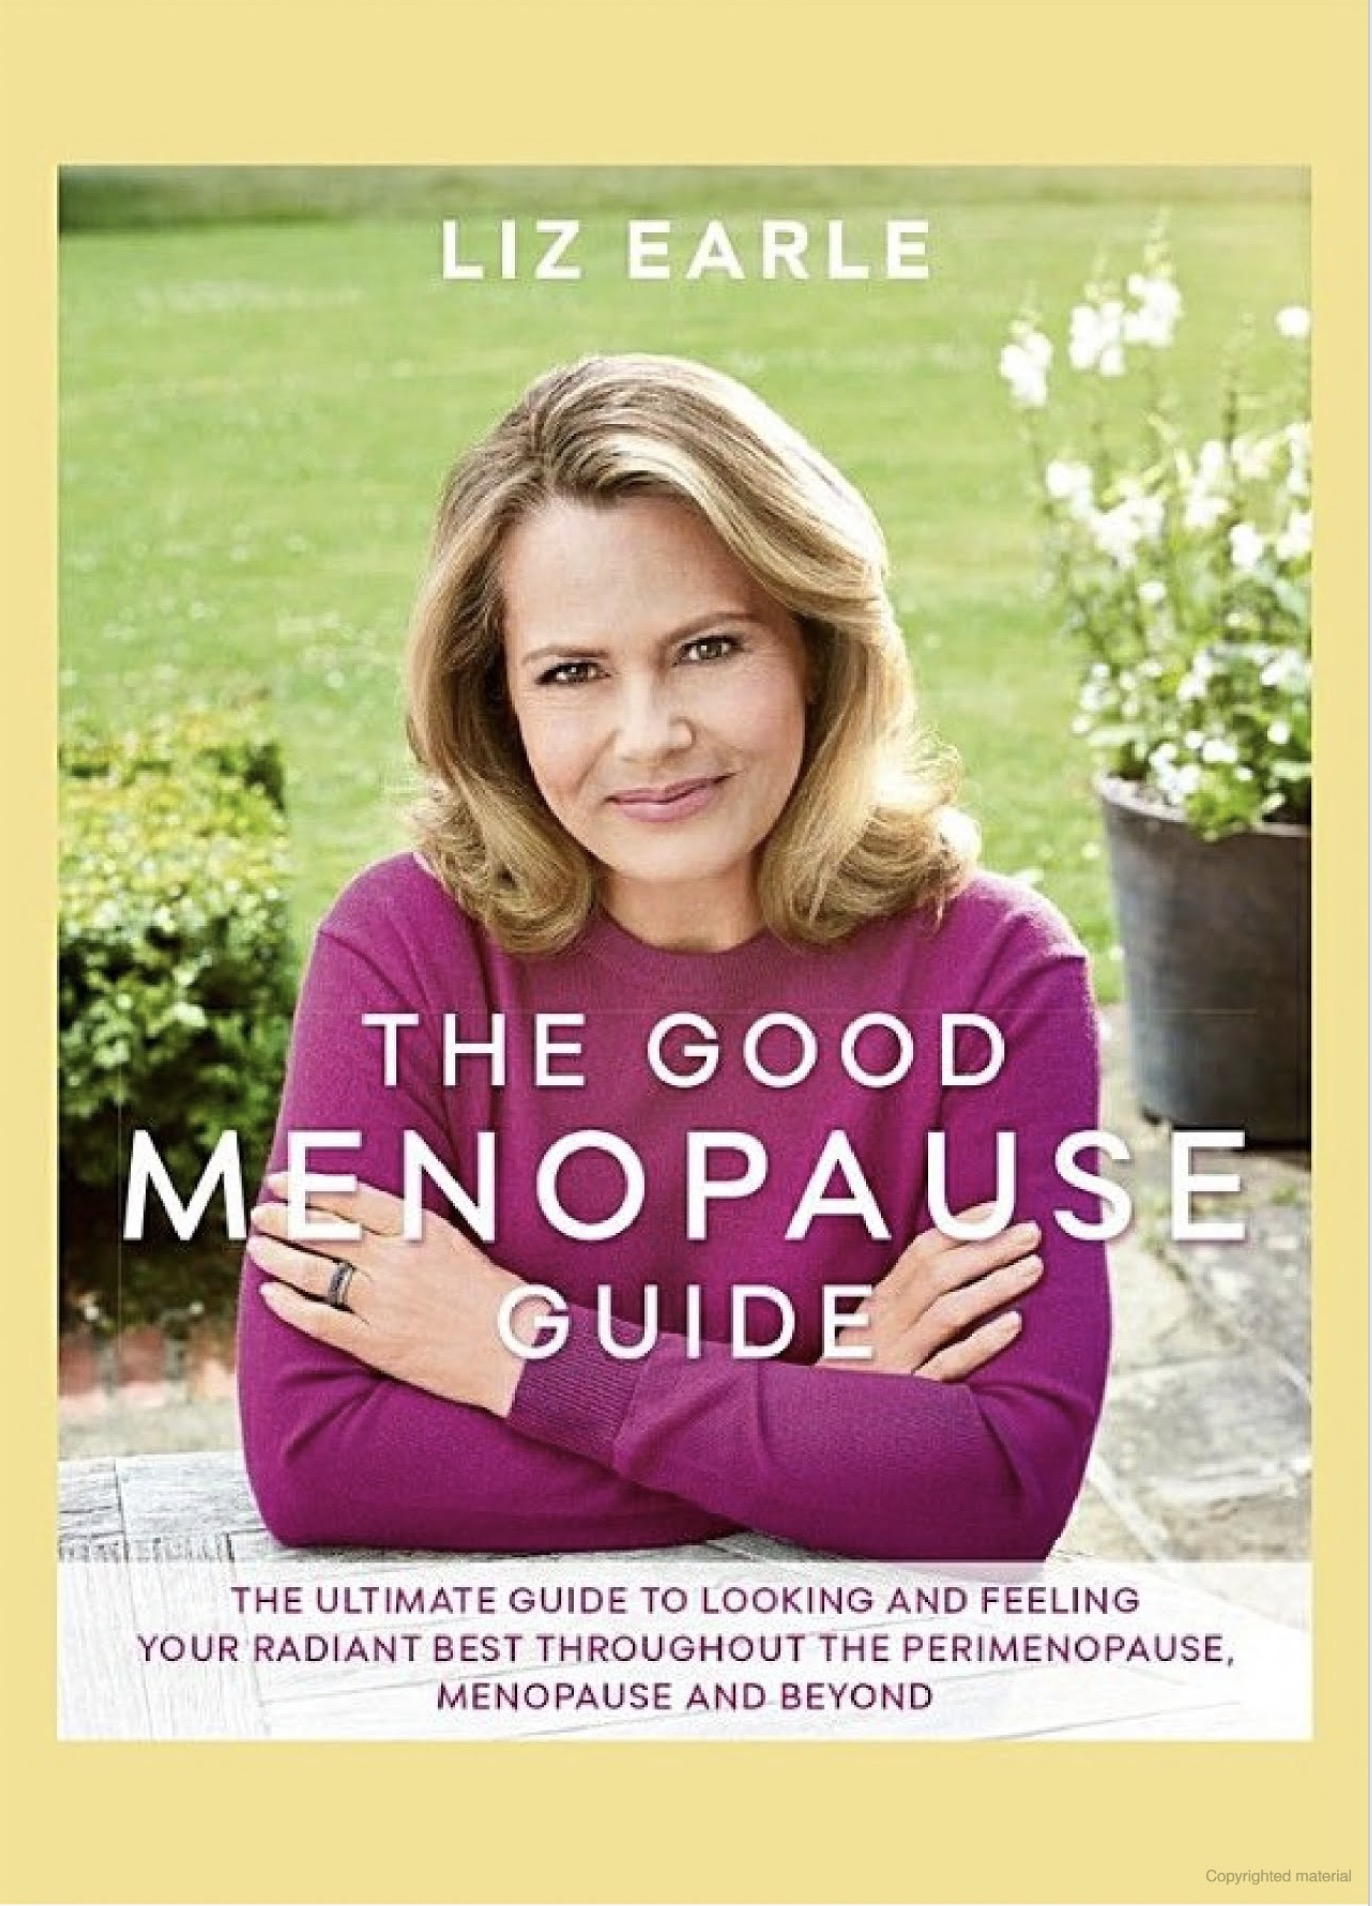 Olivier Amar press The Good Menopause Guide by Liz Earle - cosmetic surgeon London